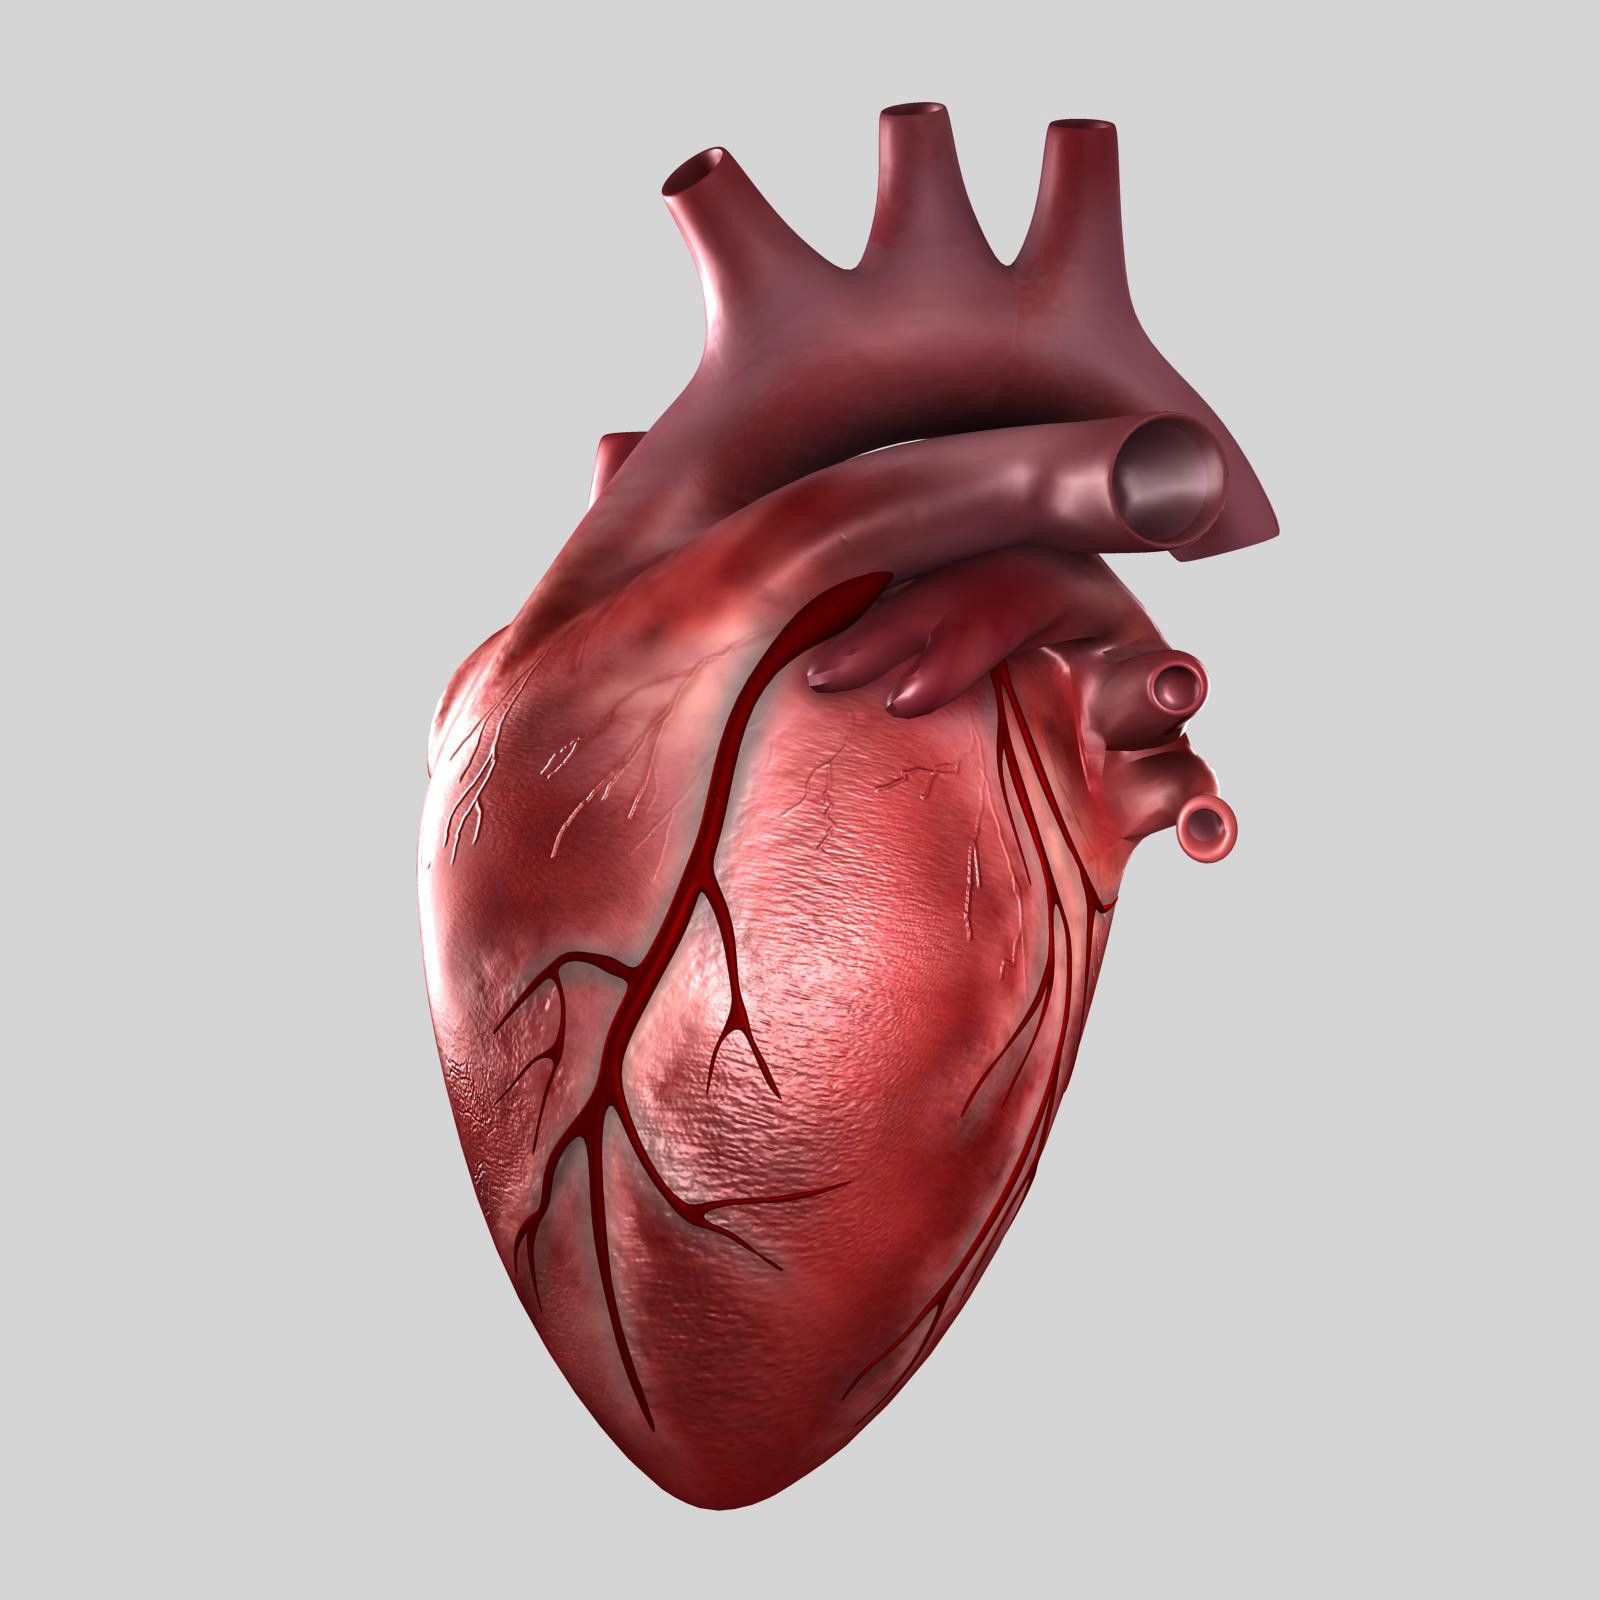 Real human heart images - photo#8